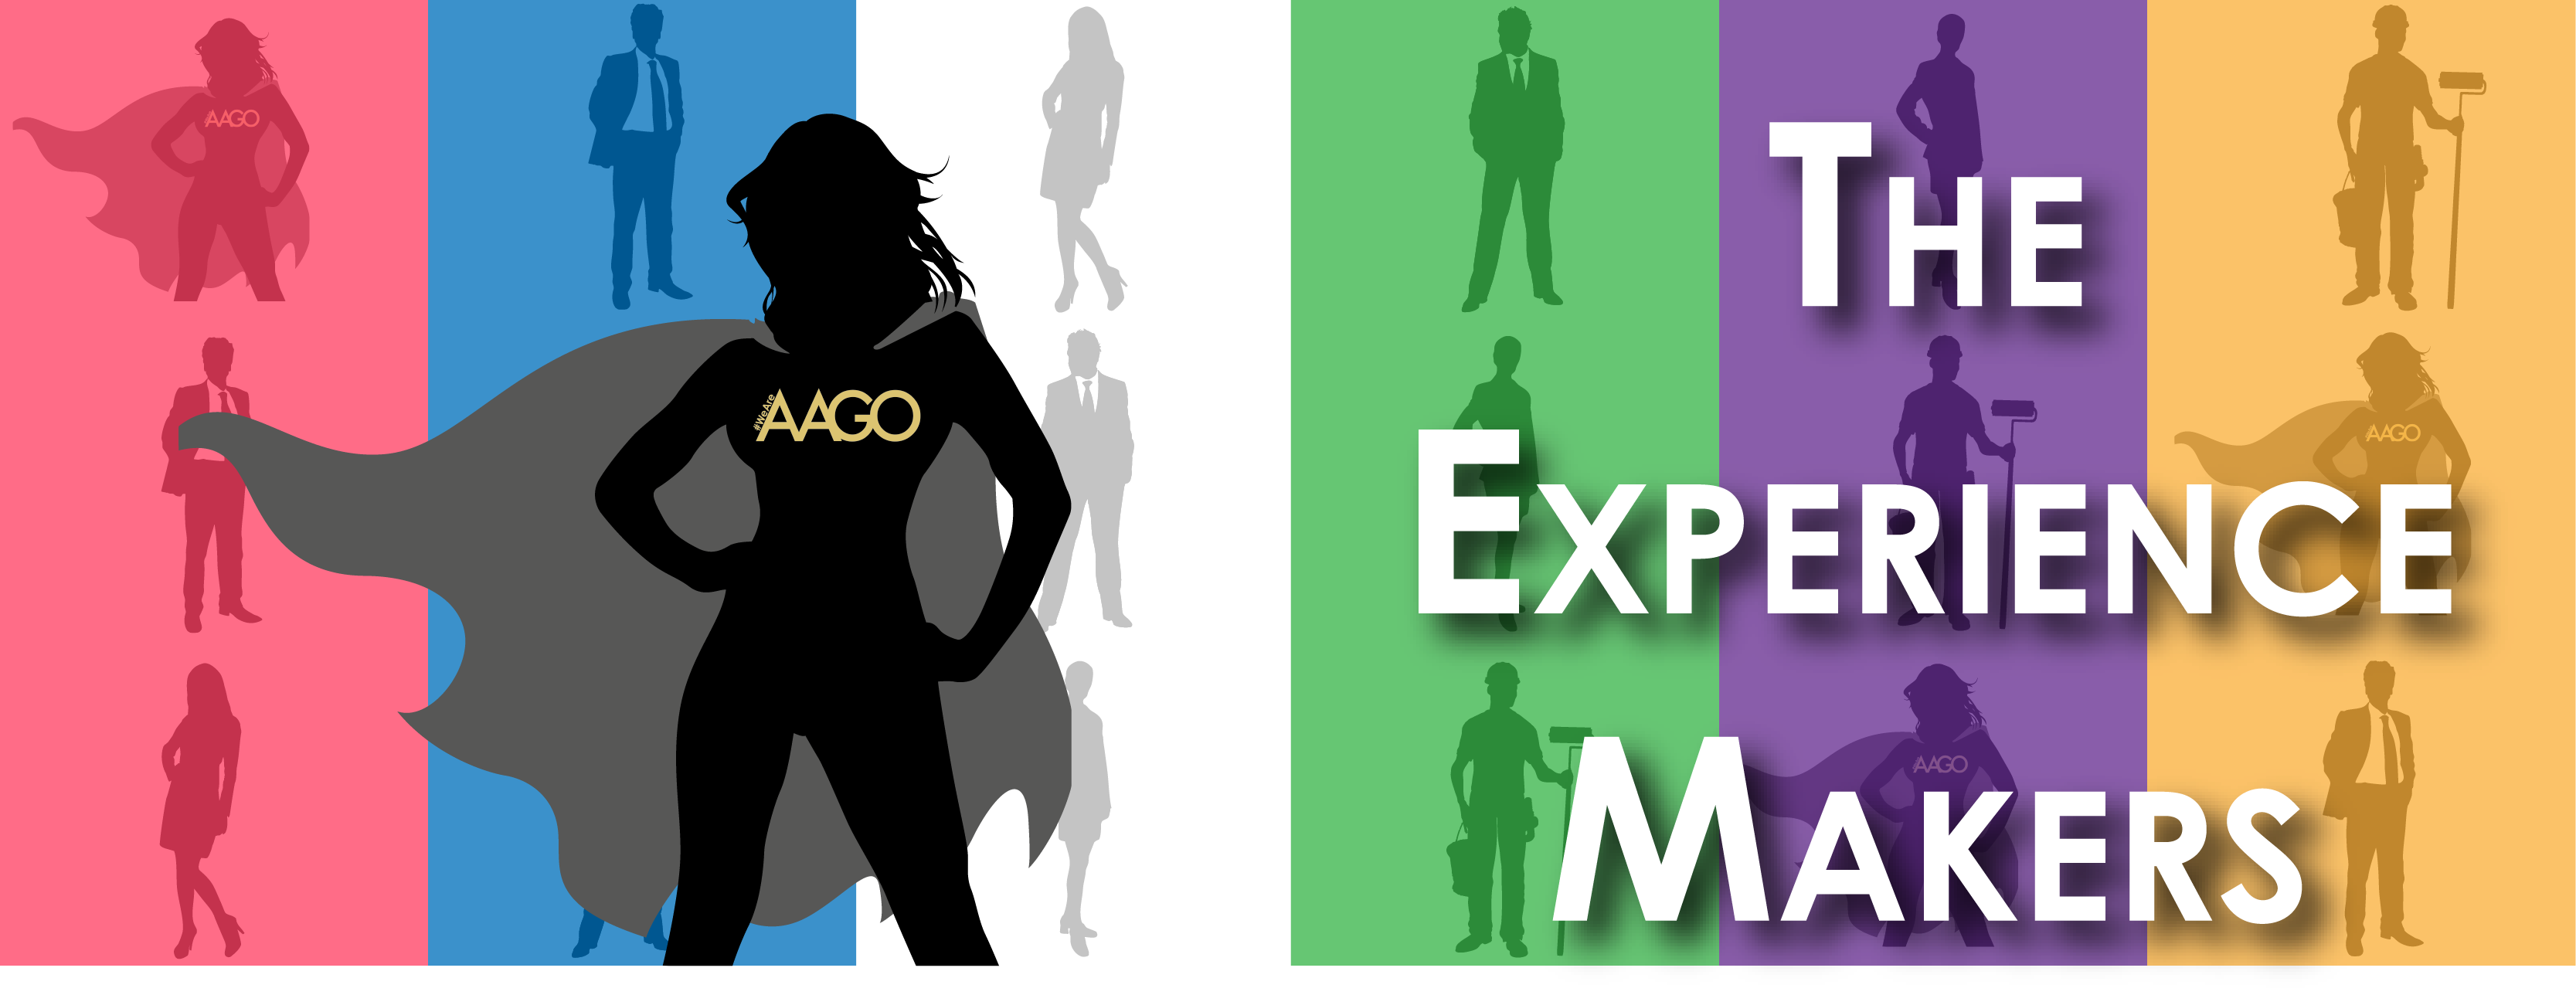 Experience makers backdrop image with super hero